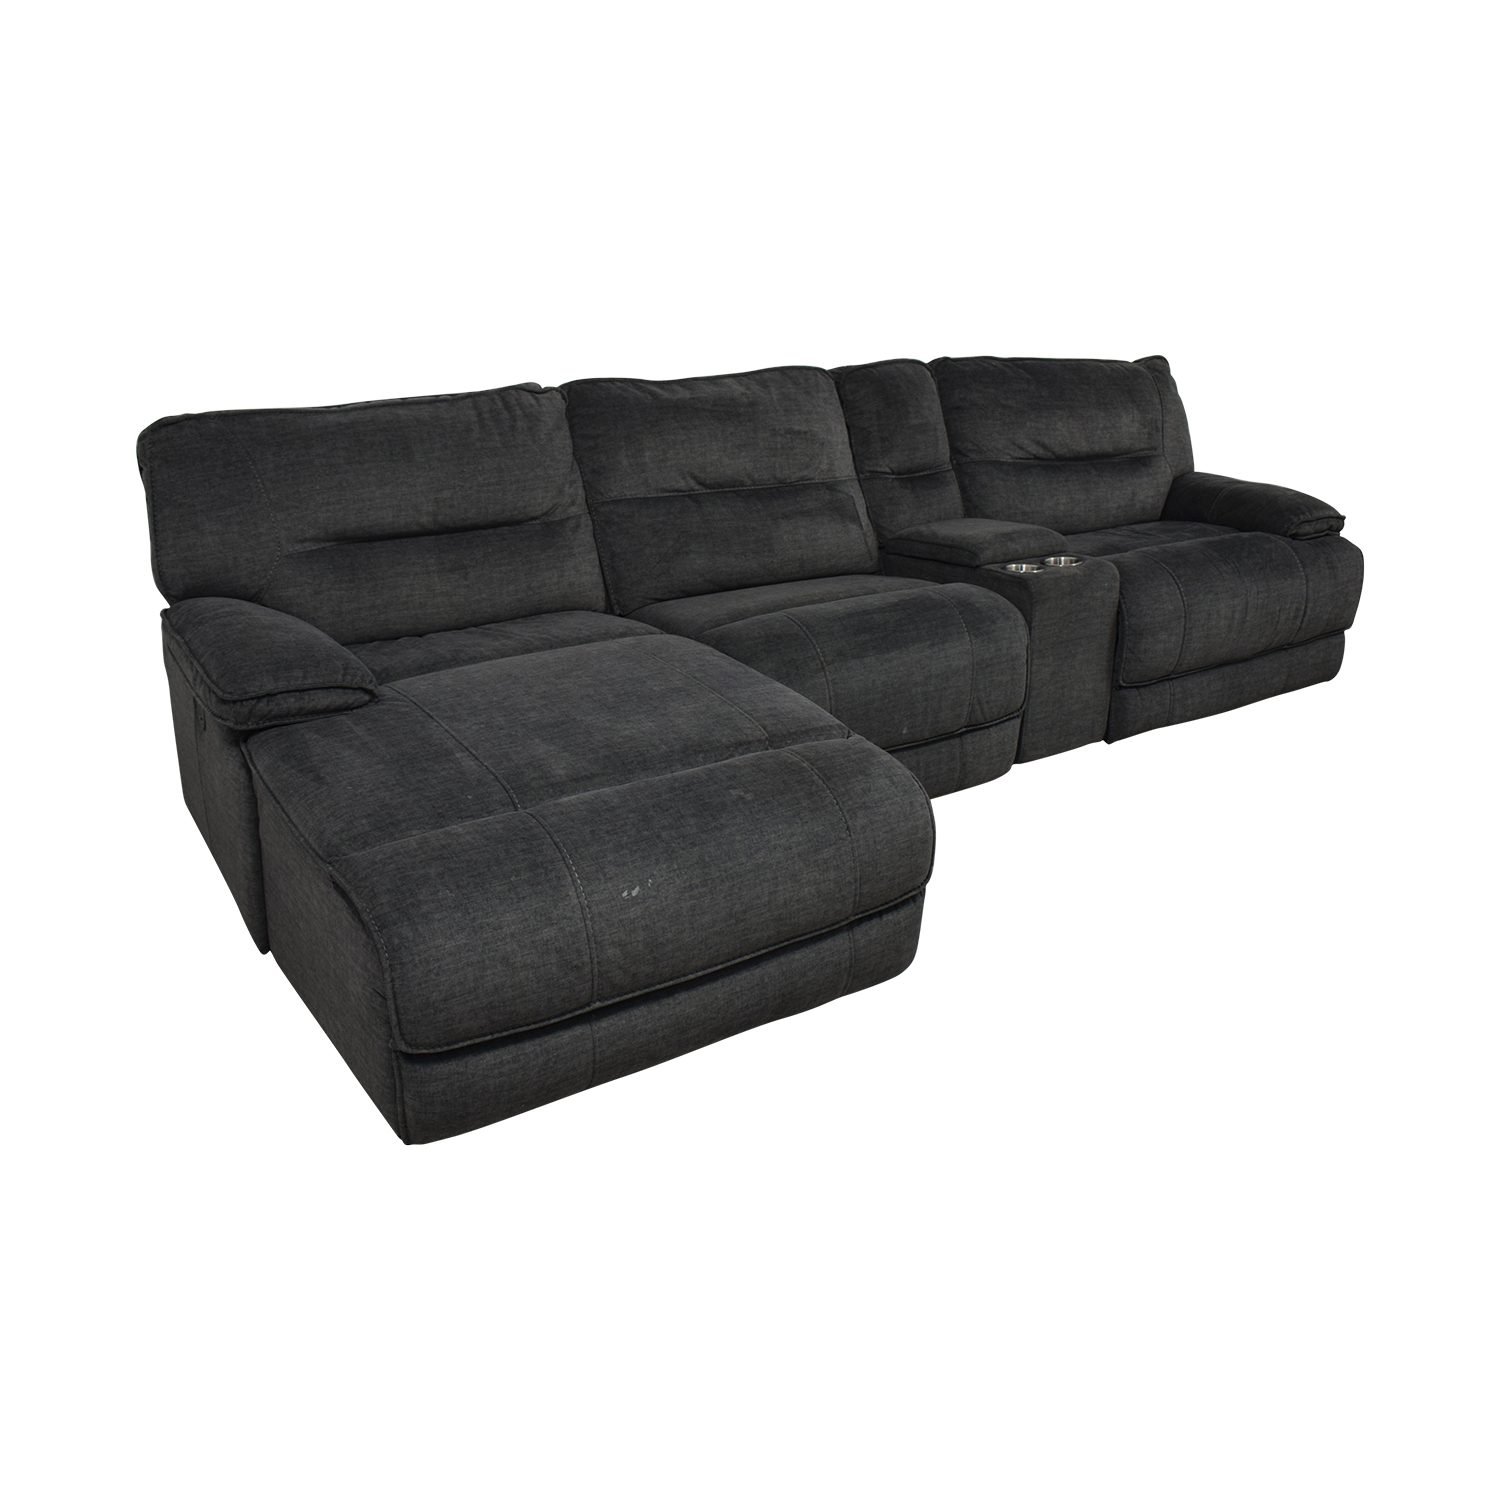 Bob's Discount Furniture Bob's Discount Furniture Reclining Sectional Sofas